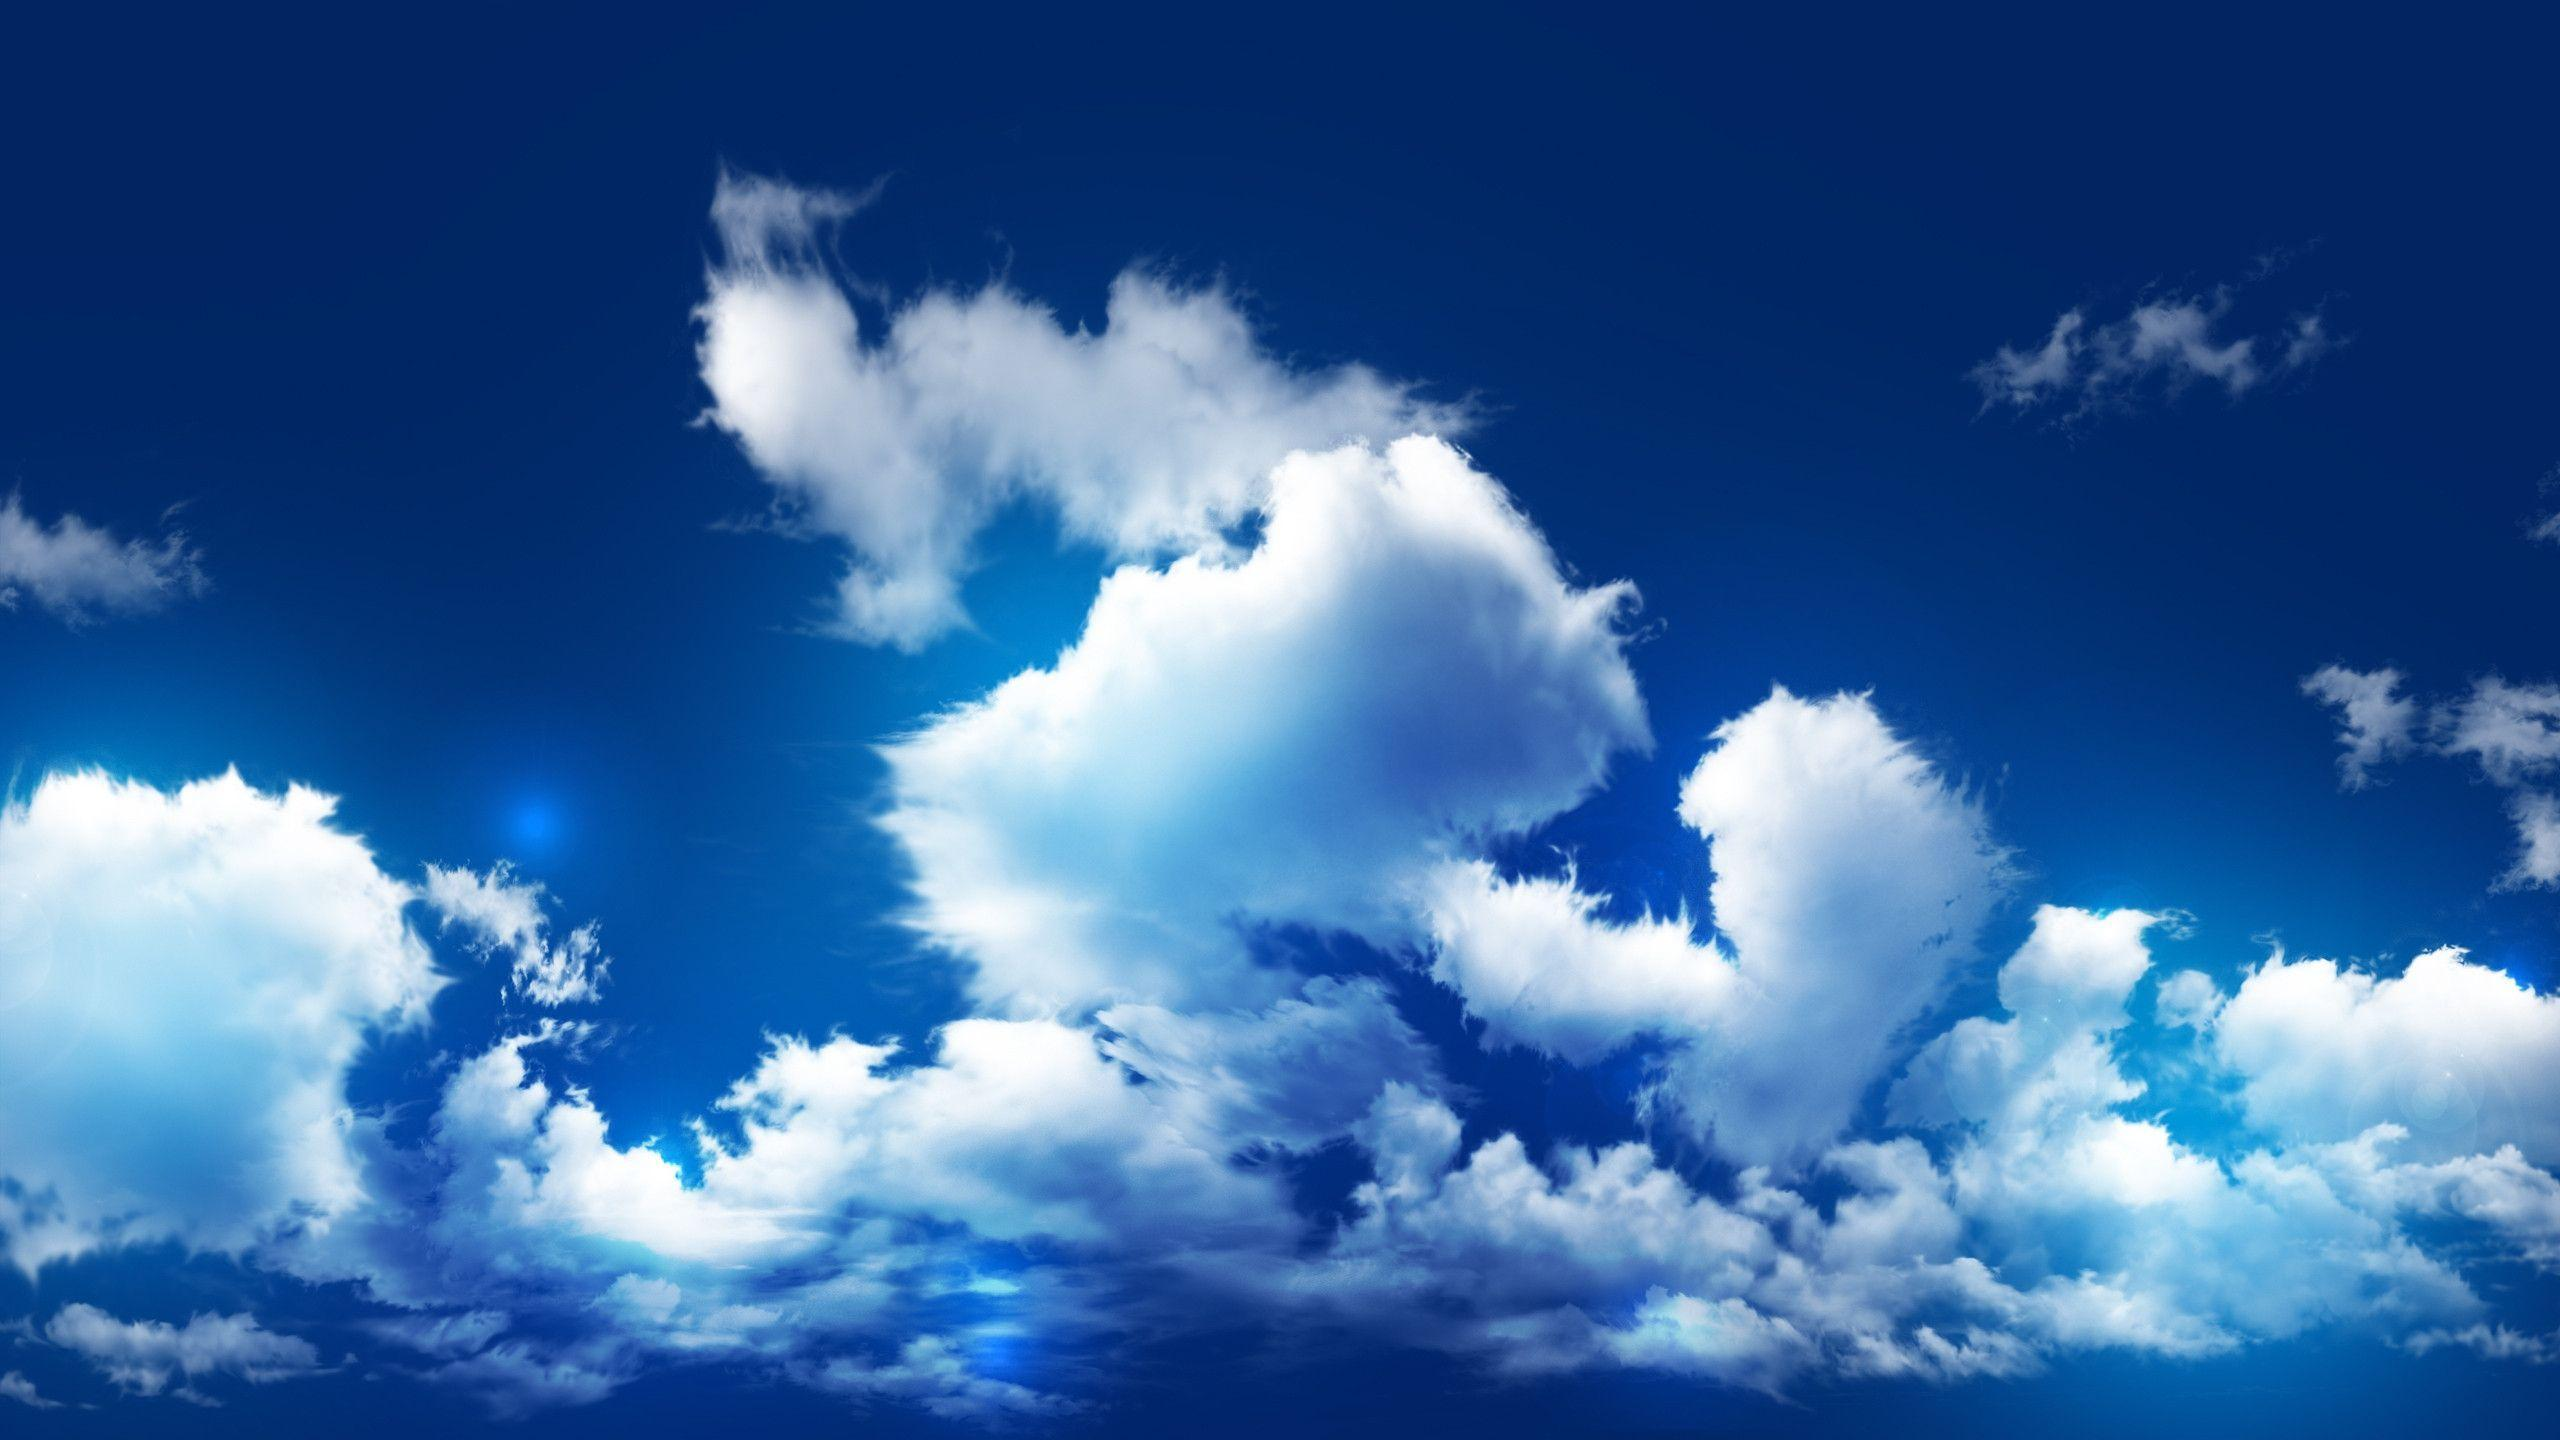 Clouds Wallpapers Wallpaper Cave